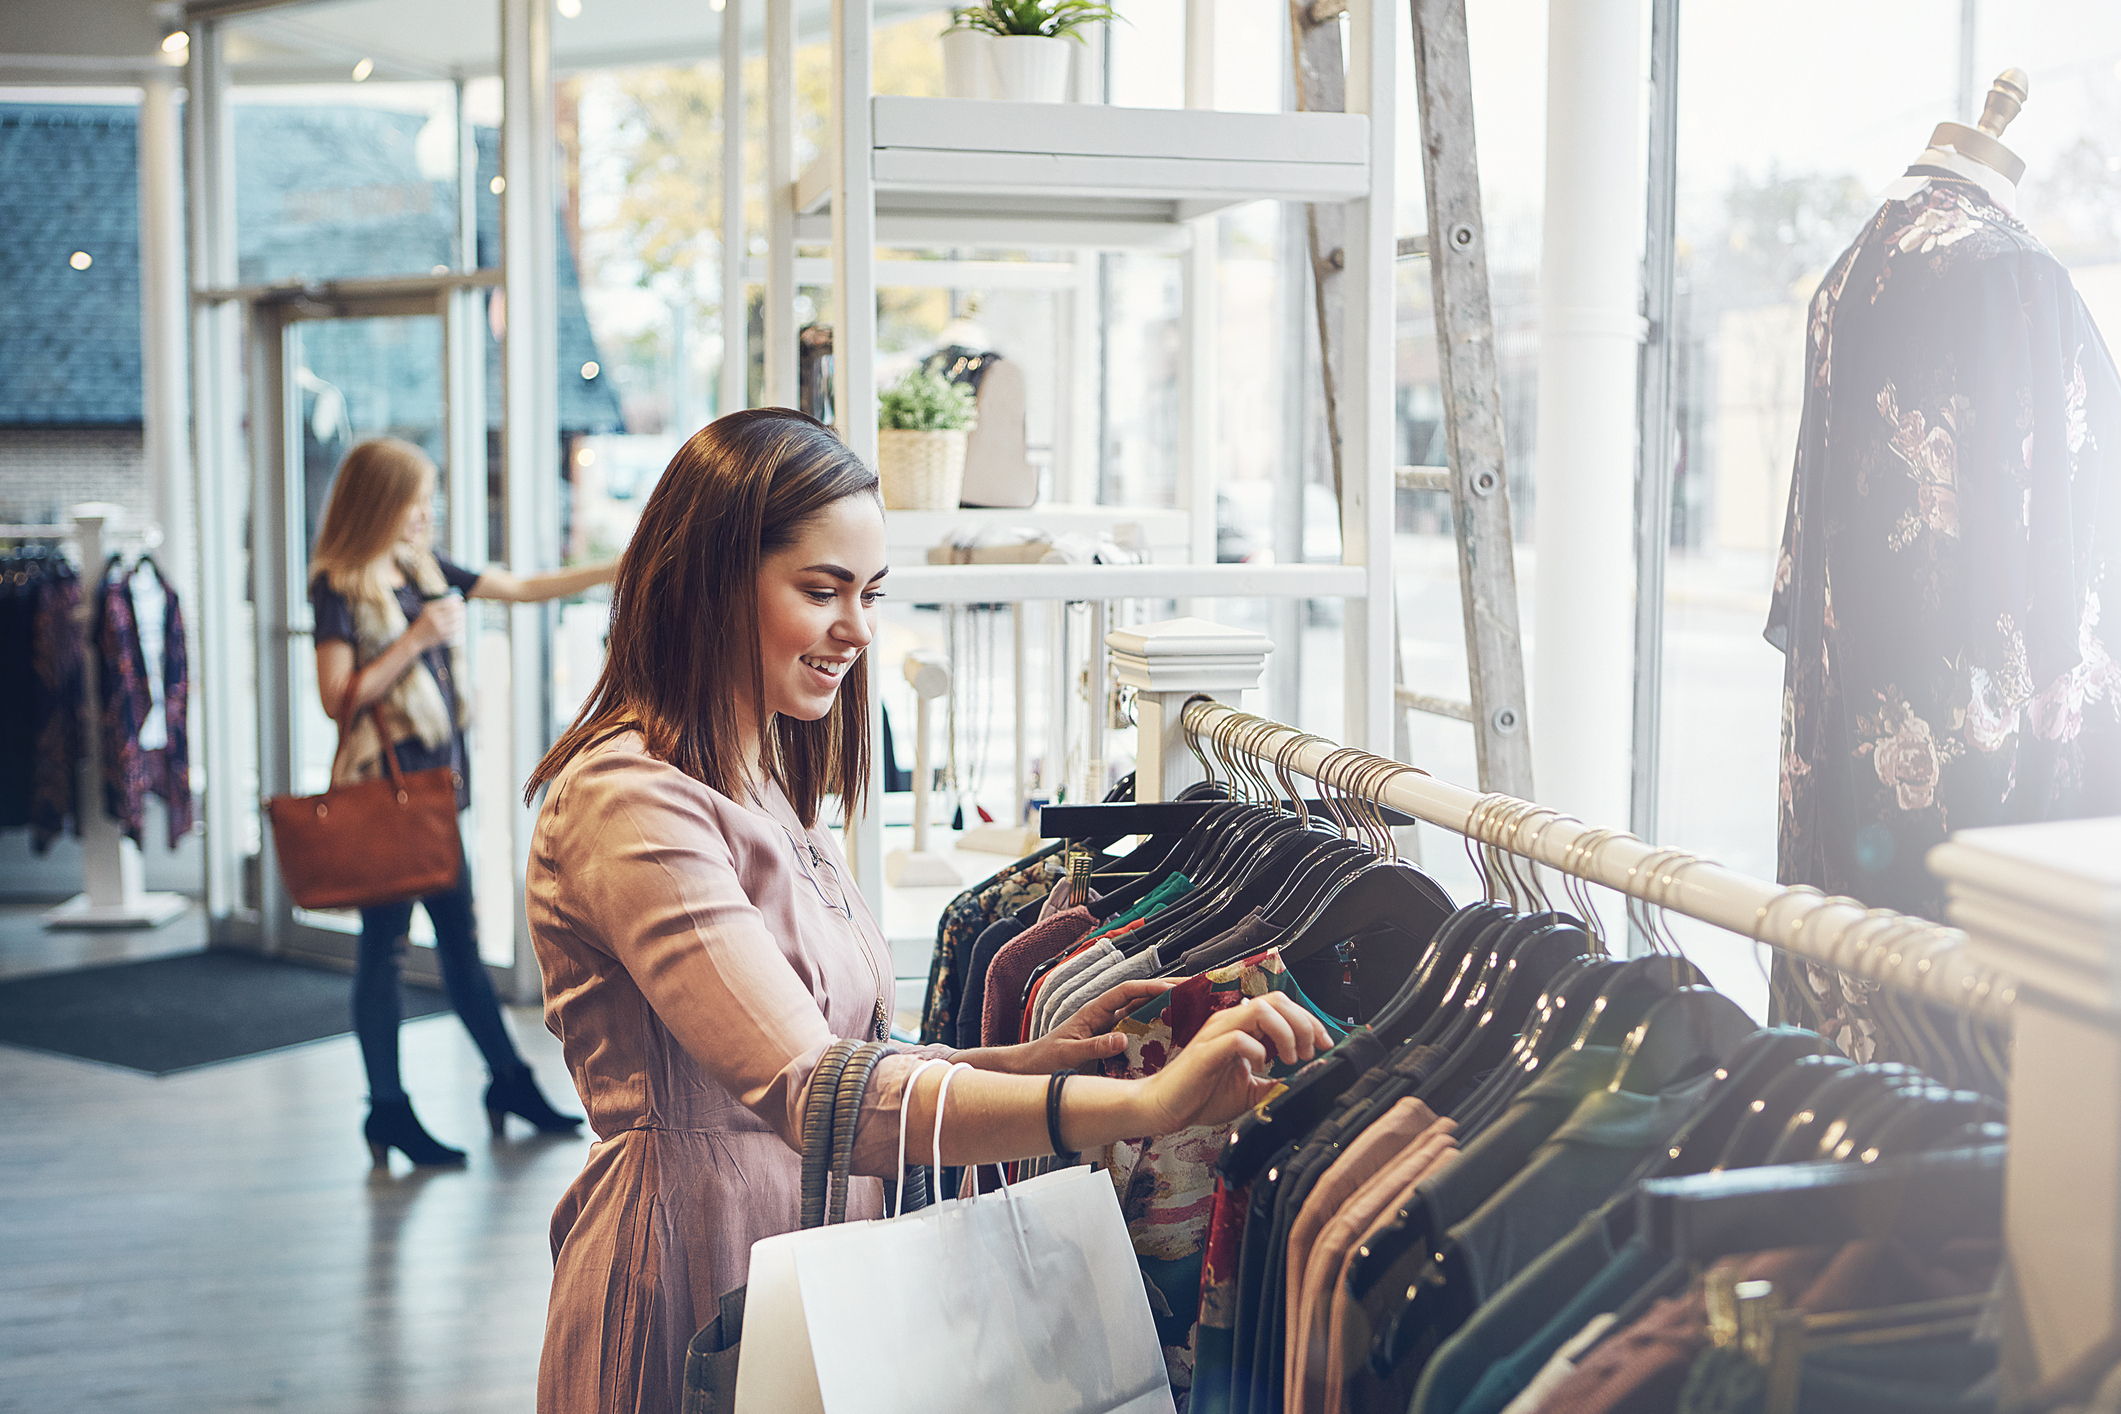 Shot of a young woman shopping at a clothing store